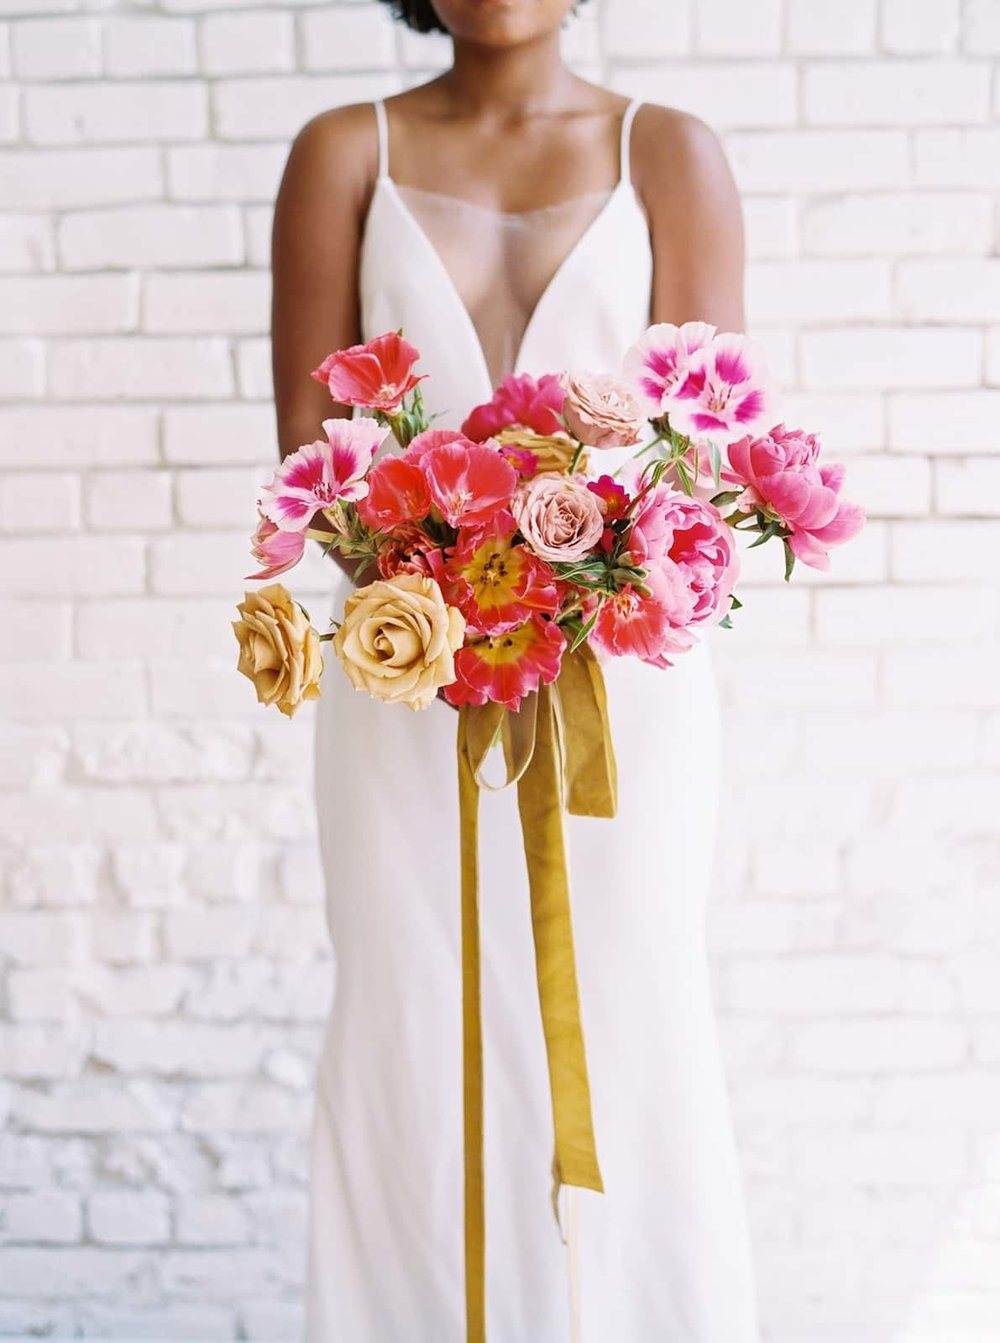 Contemporary bridal bouquet by Color Theory Collective